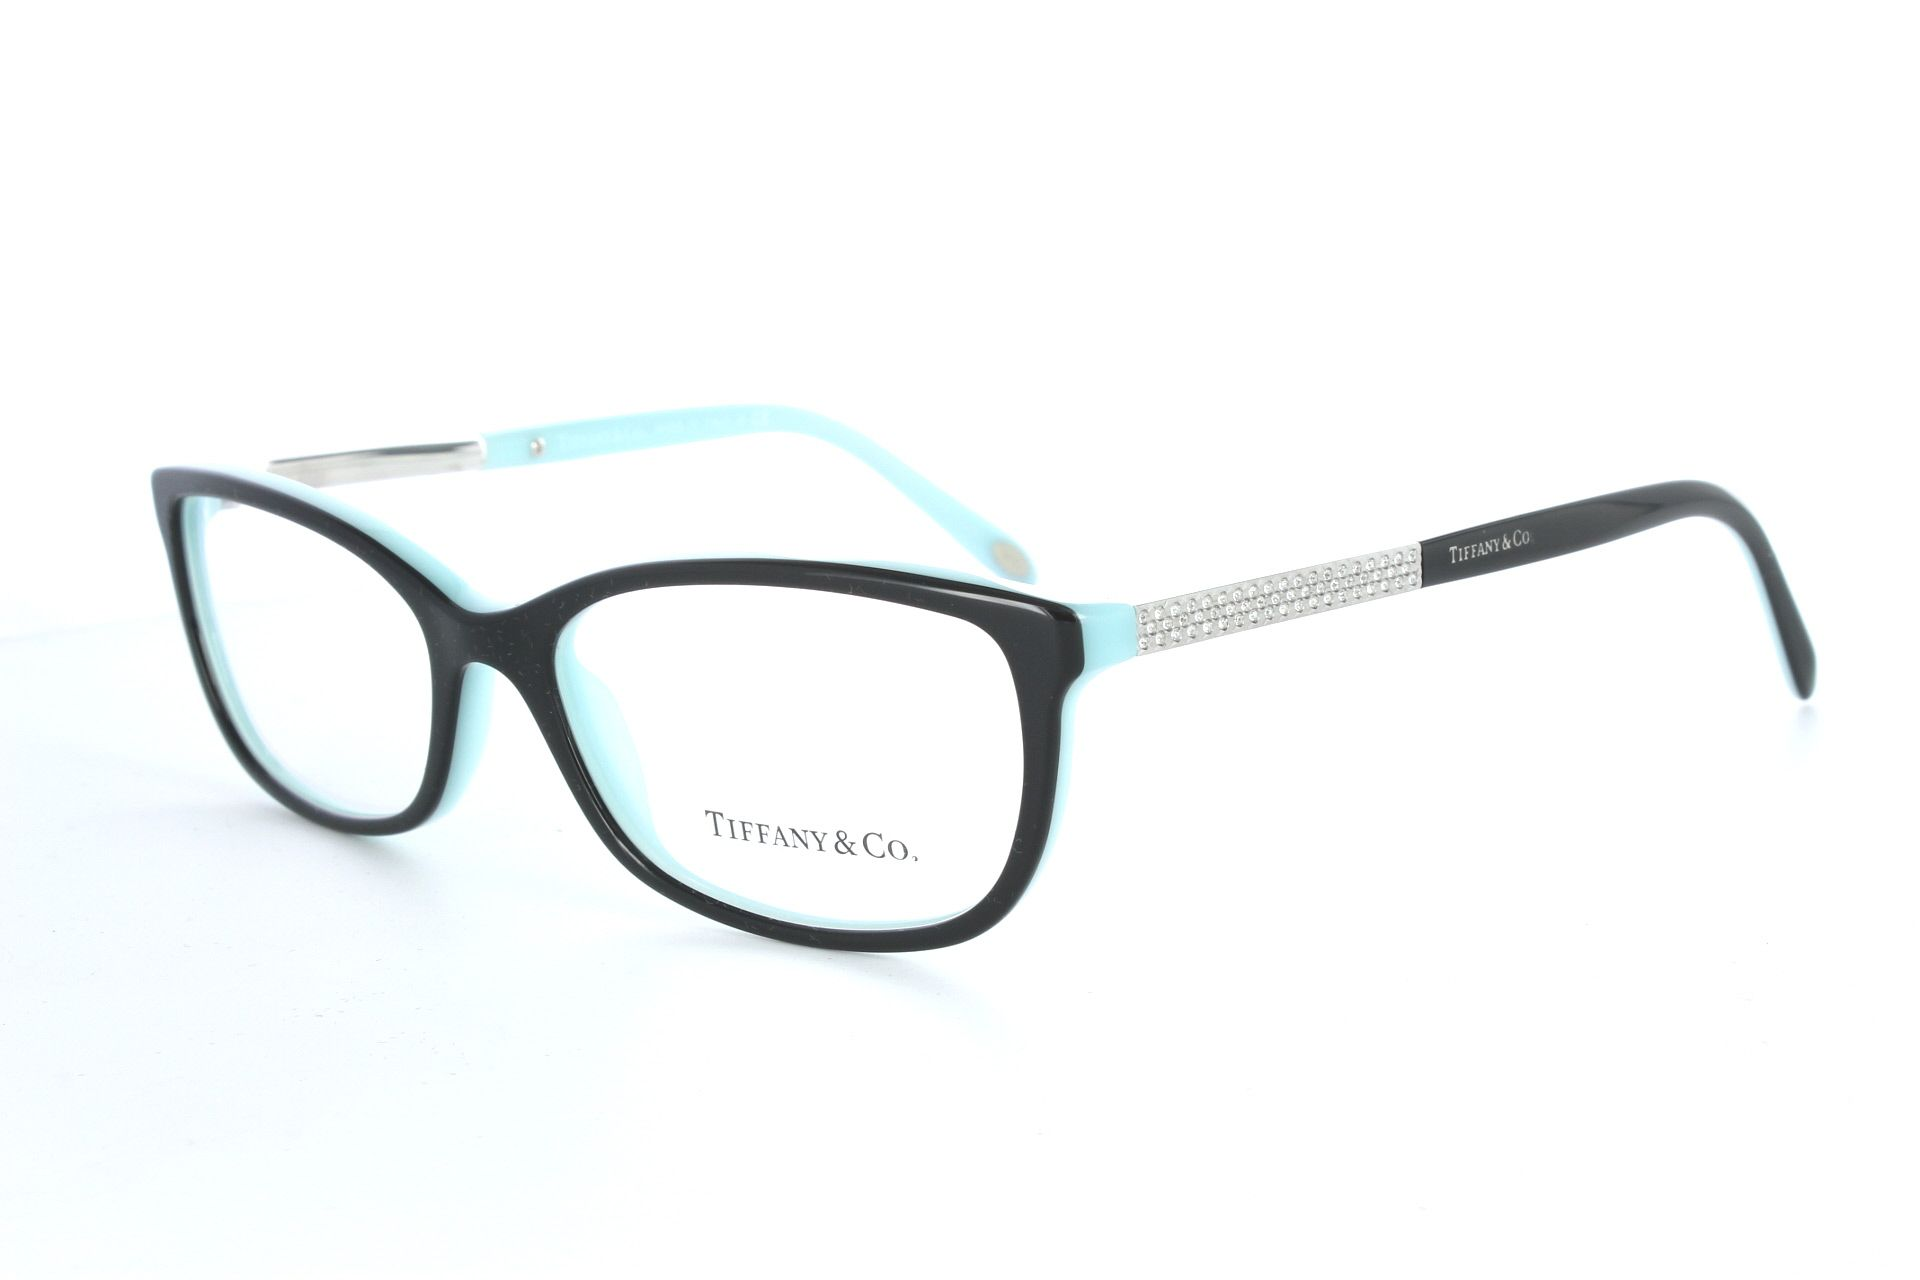 171868a9cde Tiffany and Co Eyeglass Frames